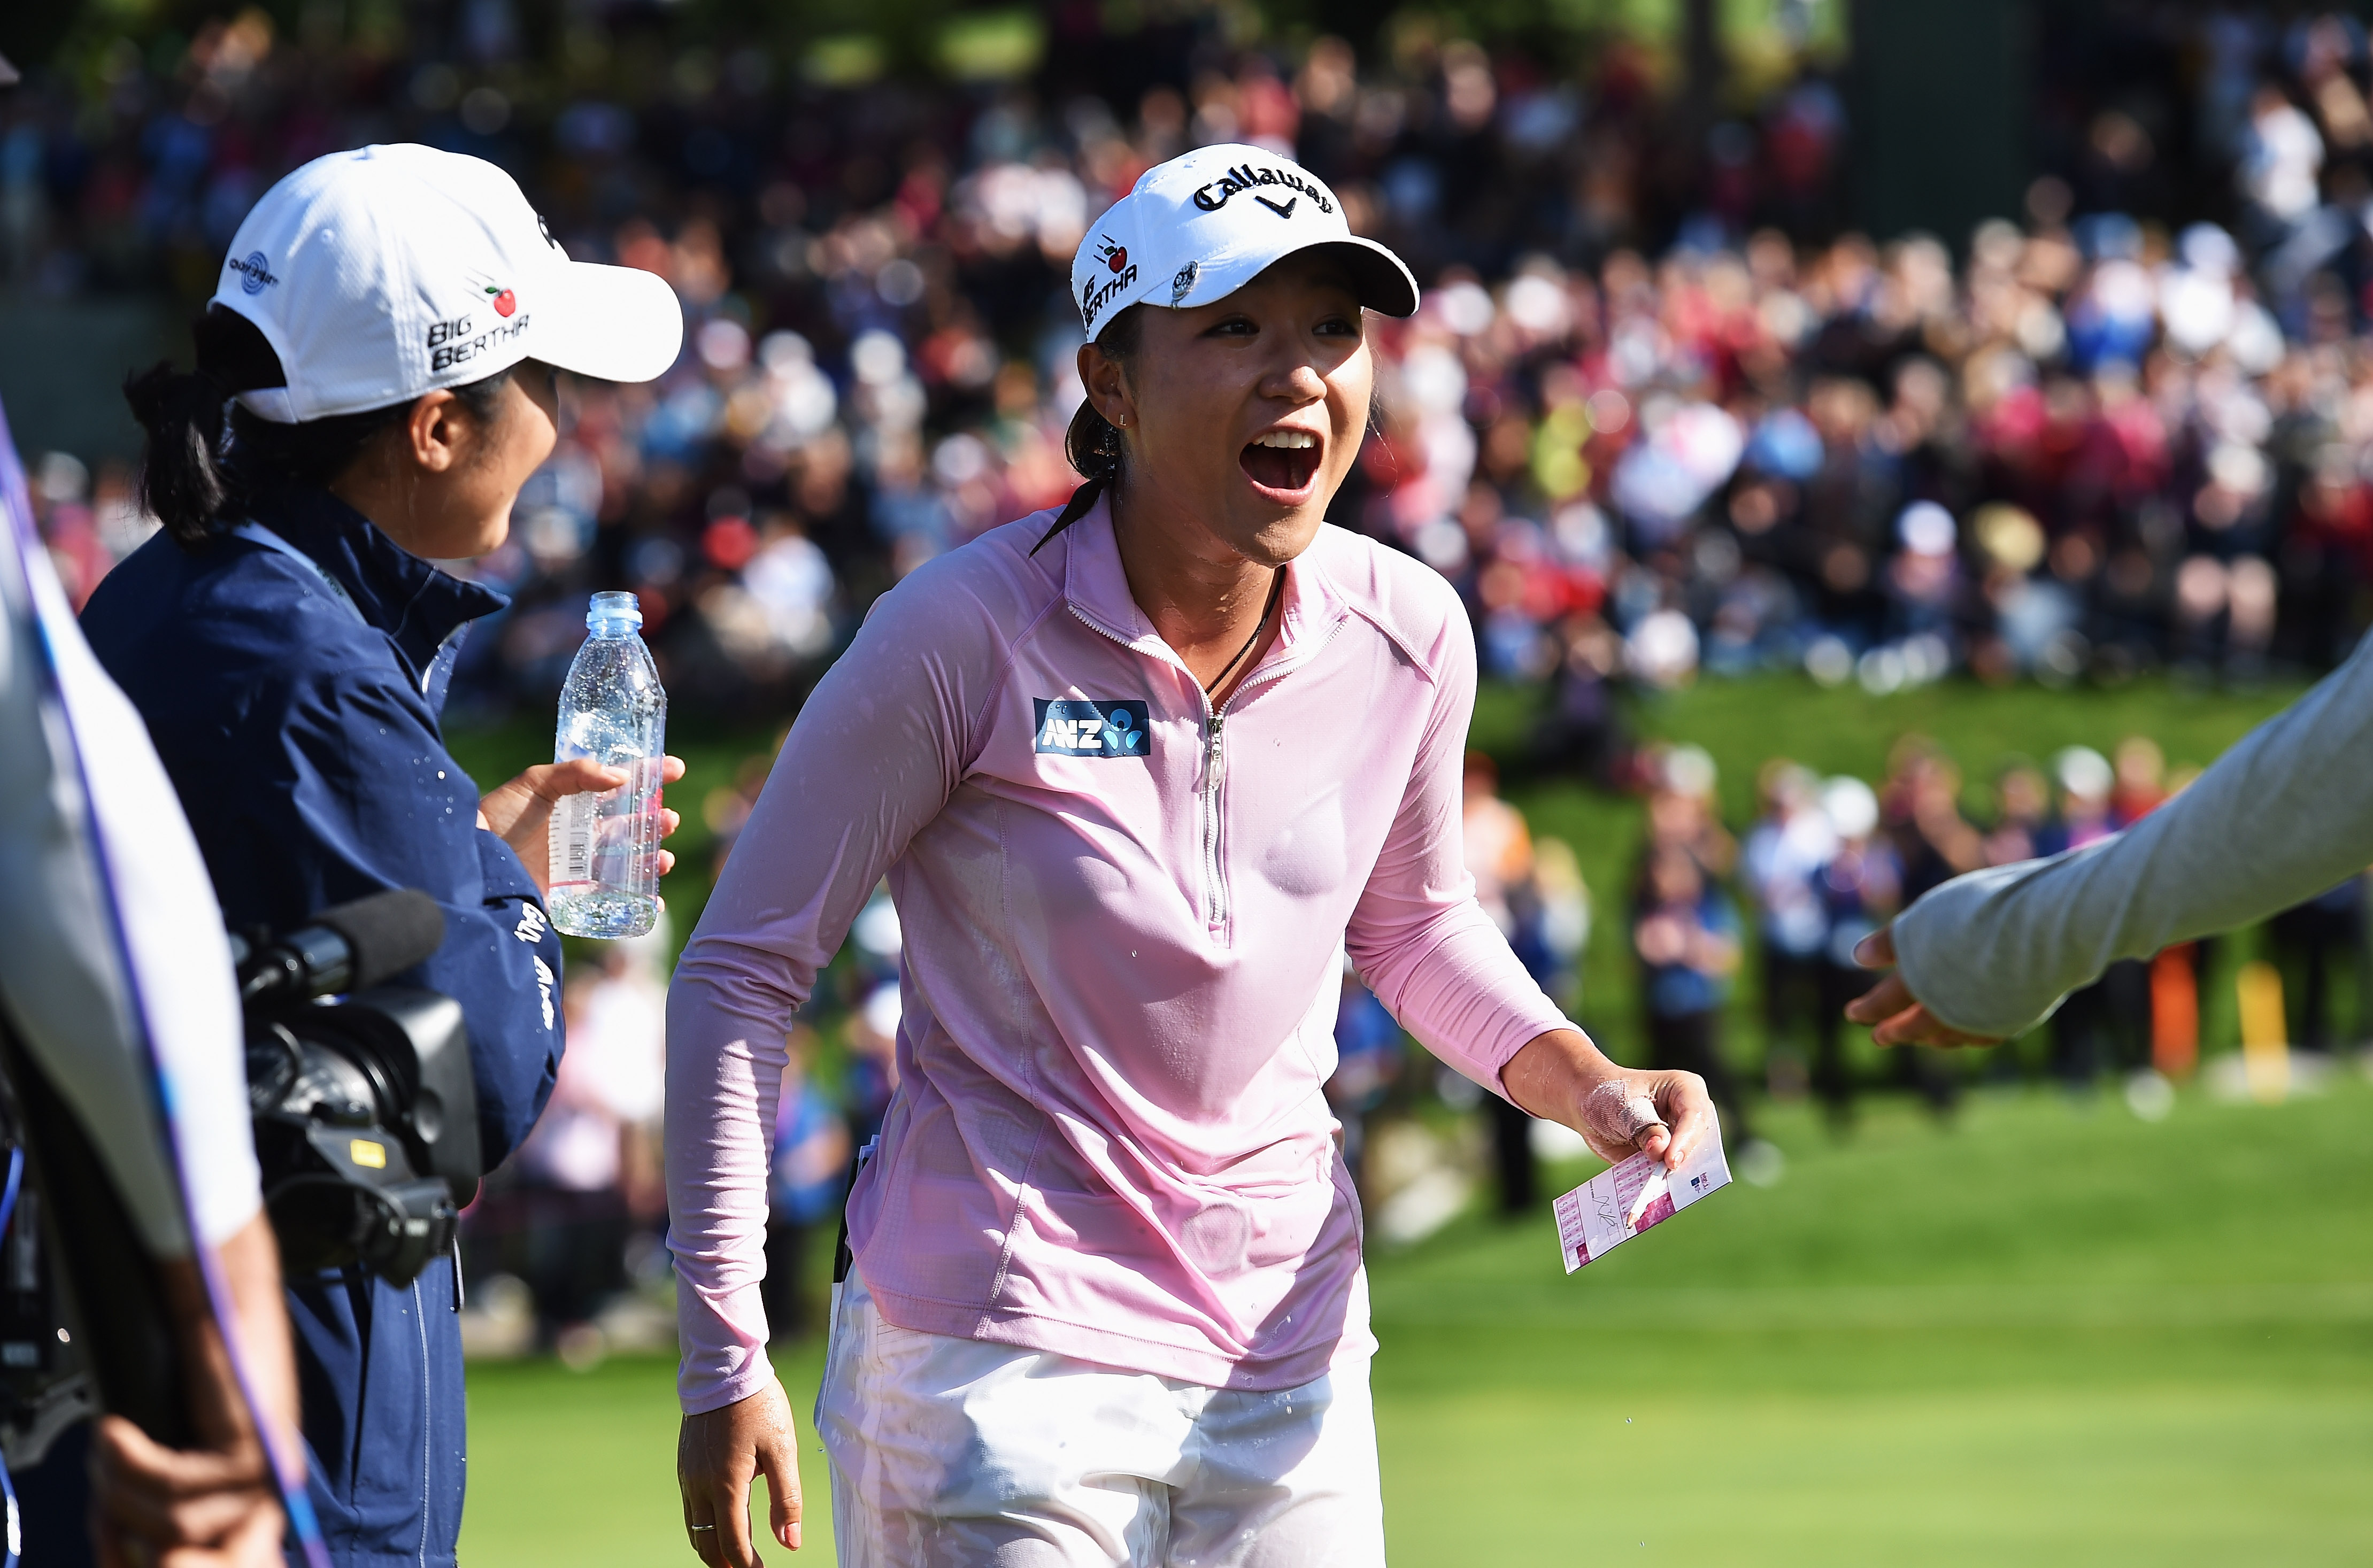 Ko was golf's youngest world number one when she topped the rankings at 17 (Photo: Getty Images)